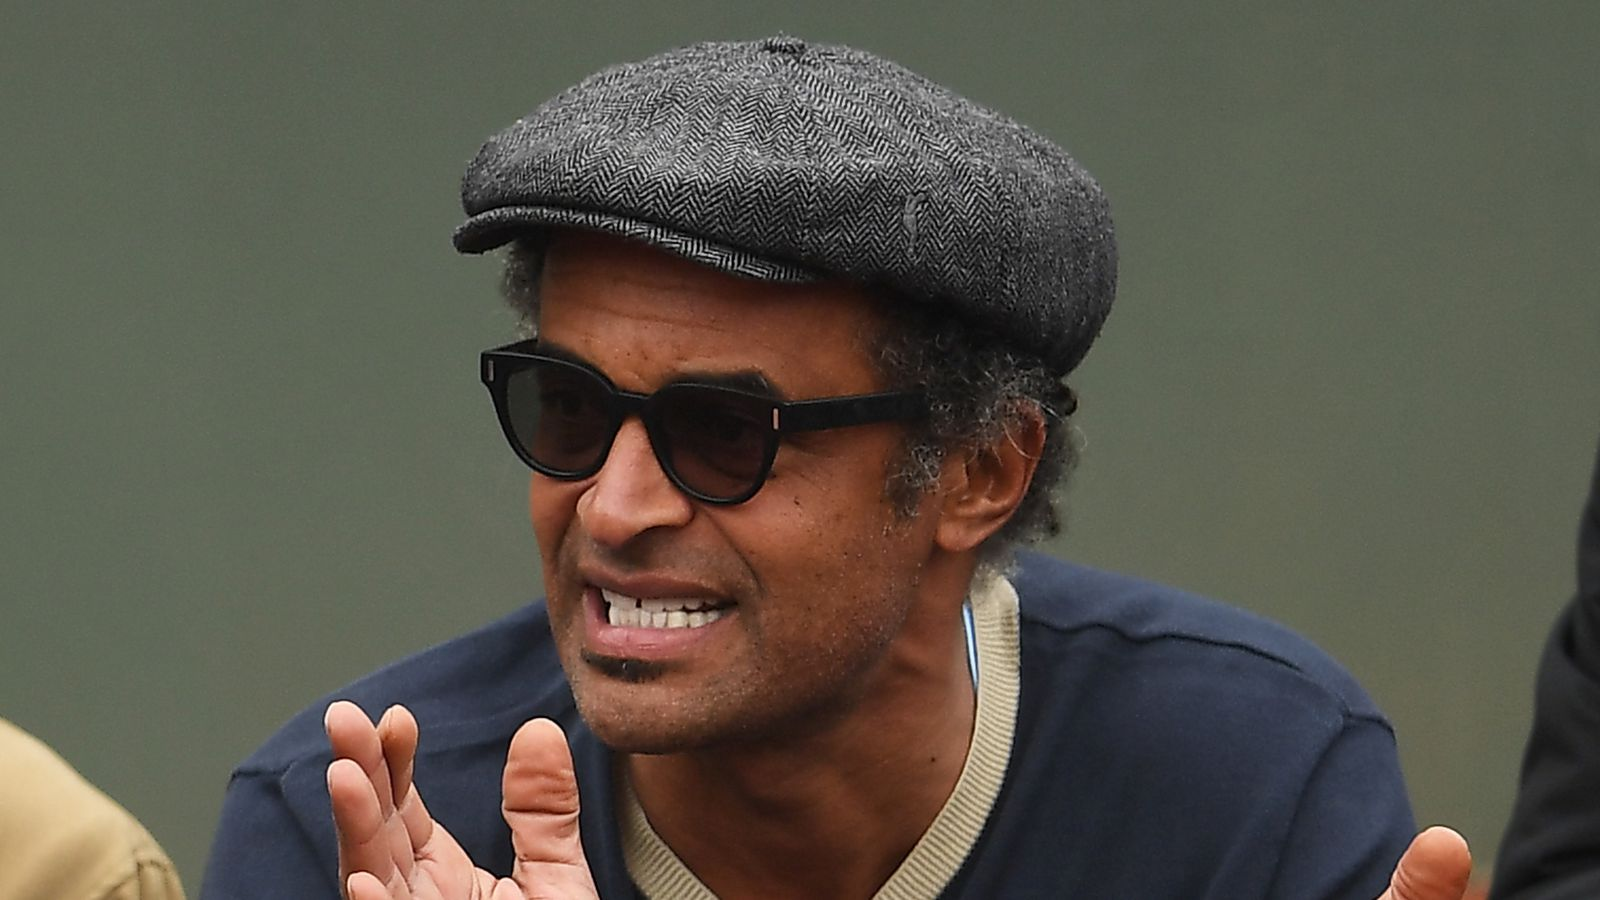 Tennis Legend Yannick Noah Is Hyped To Watch His Son